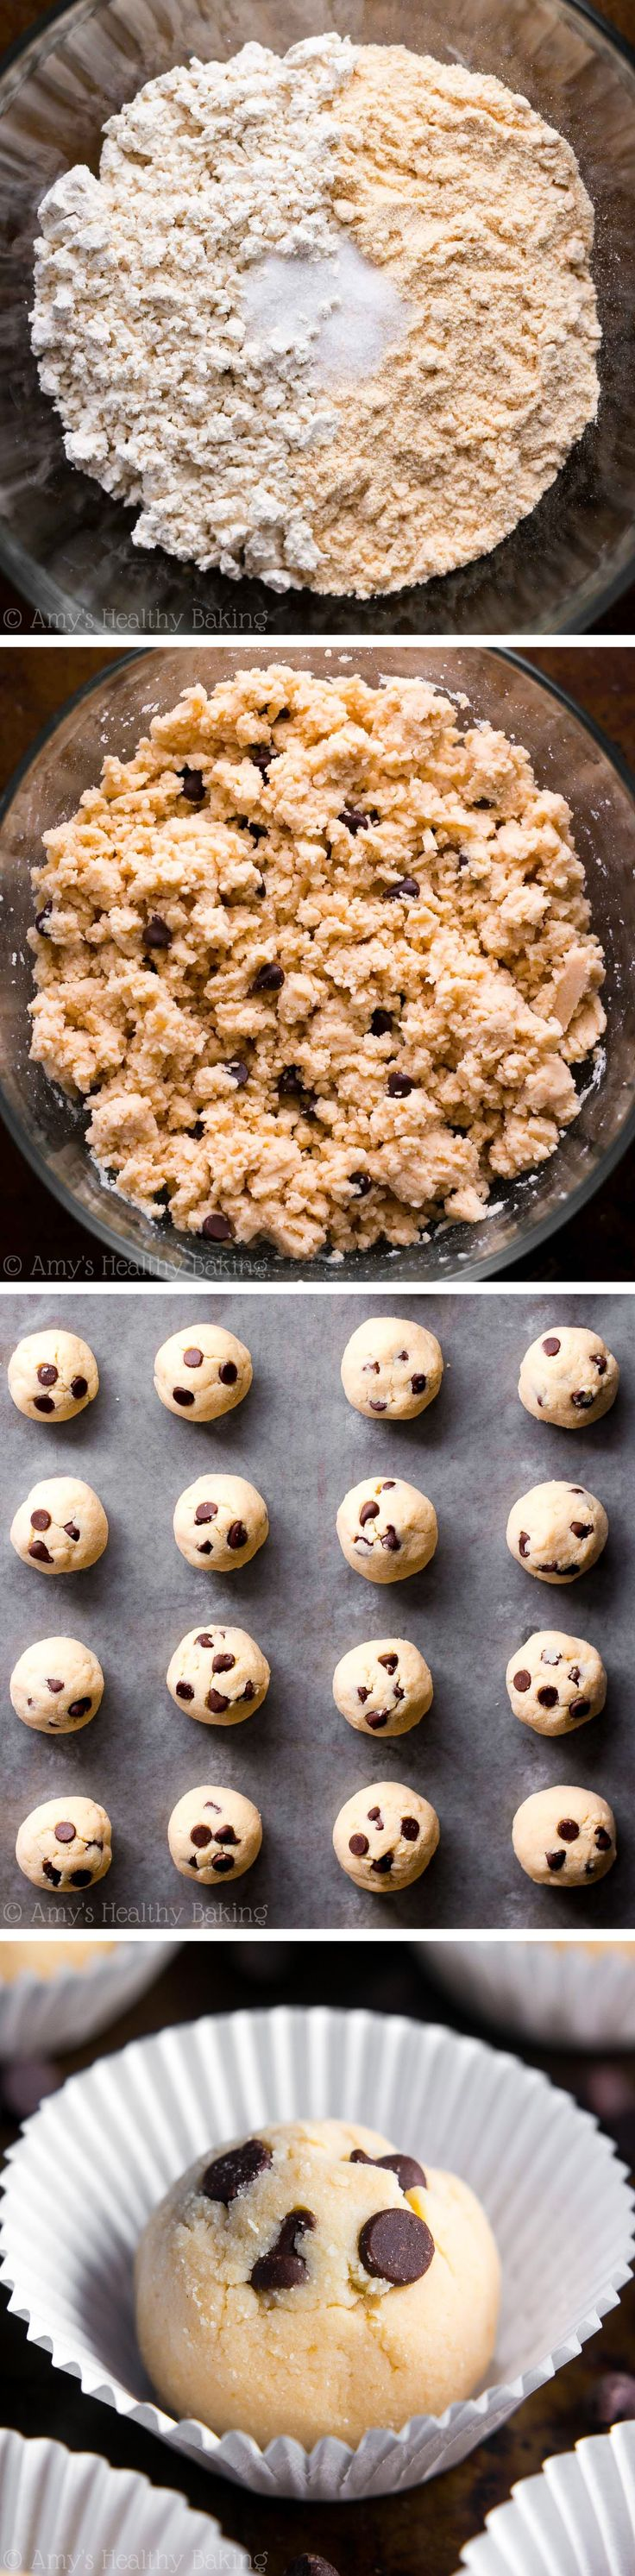 This healthy snack tastes JUST like cookie dough snuck straight from the bowl! Completely guilt-free with only 77 calories & 6g of protein!